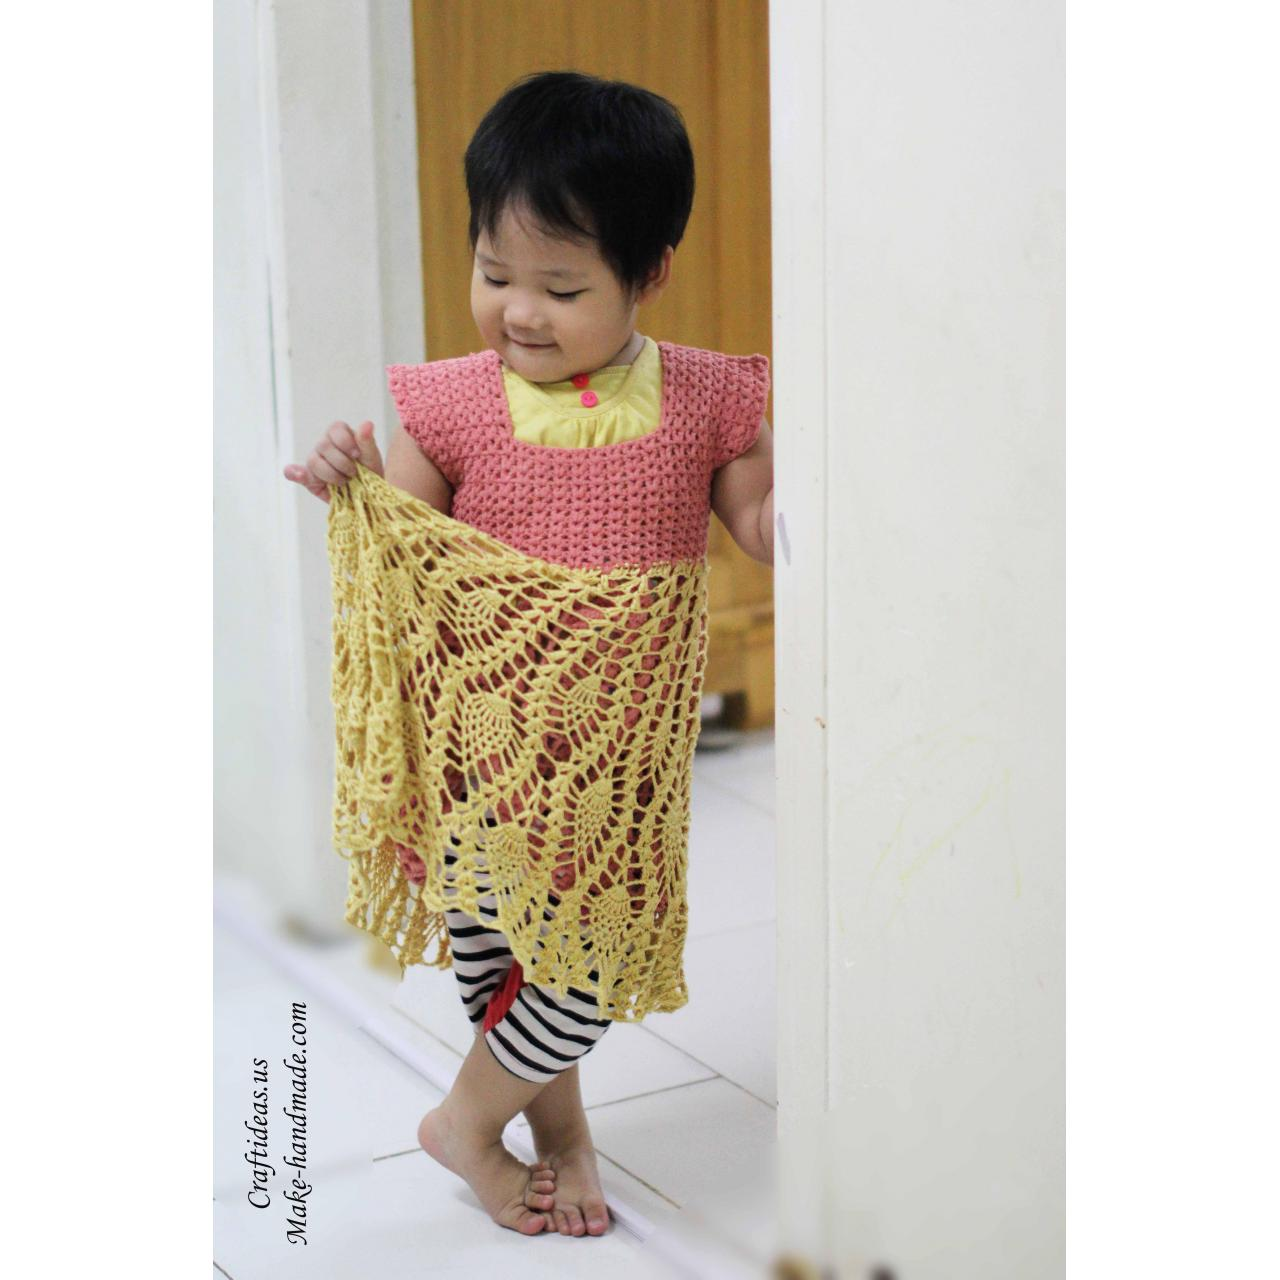 Wholesale Handmade Crochet pineapple baby dress ideas from china suppliers